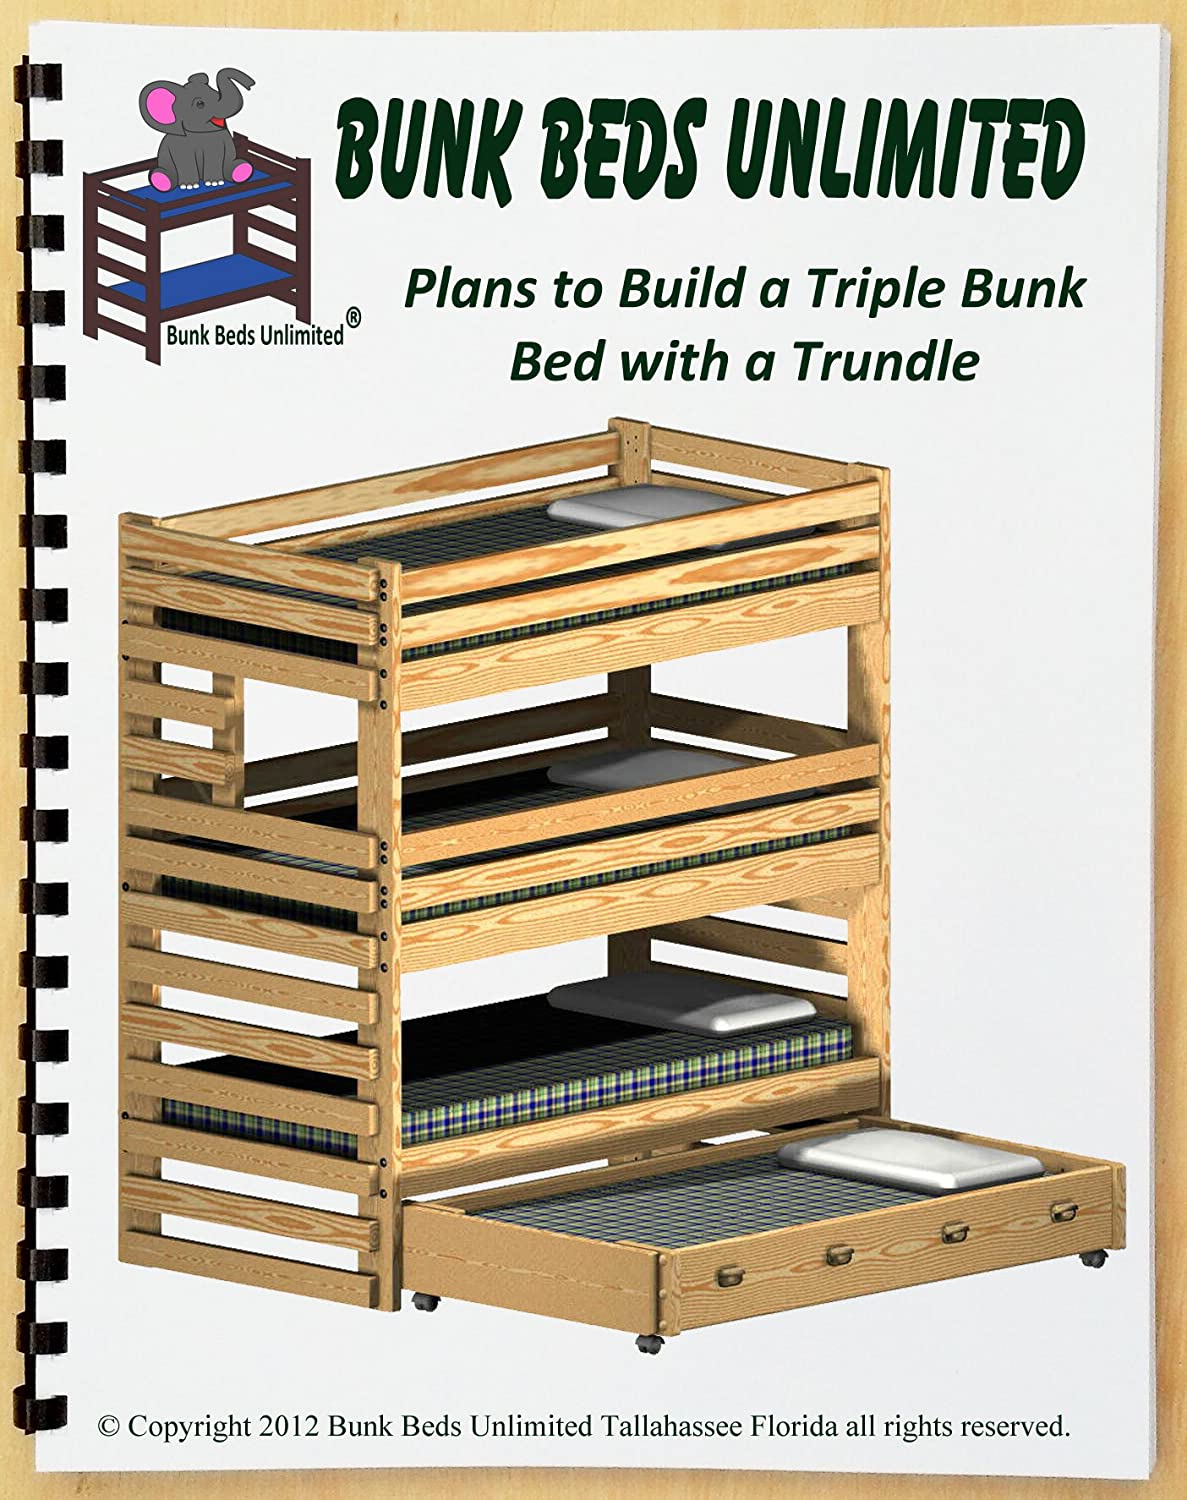 triple bunk diy woodworking plan to build your own extratall with trundle bed and hardware kit for bunk and trundle to make a quadruple bunk bed that